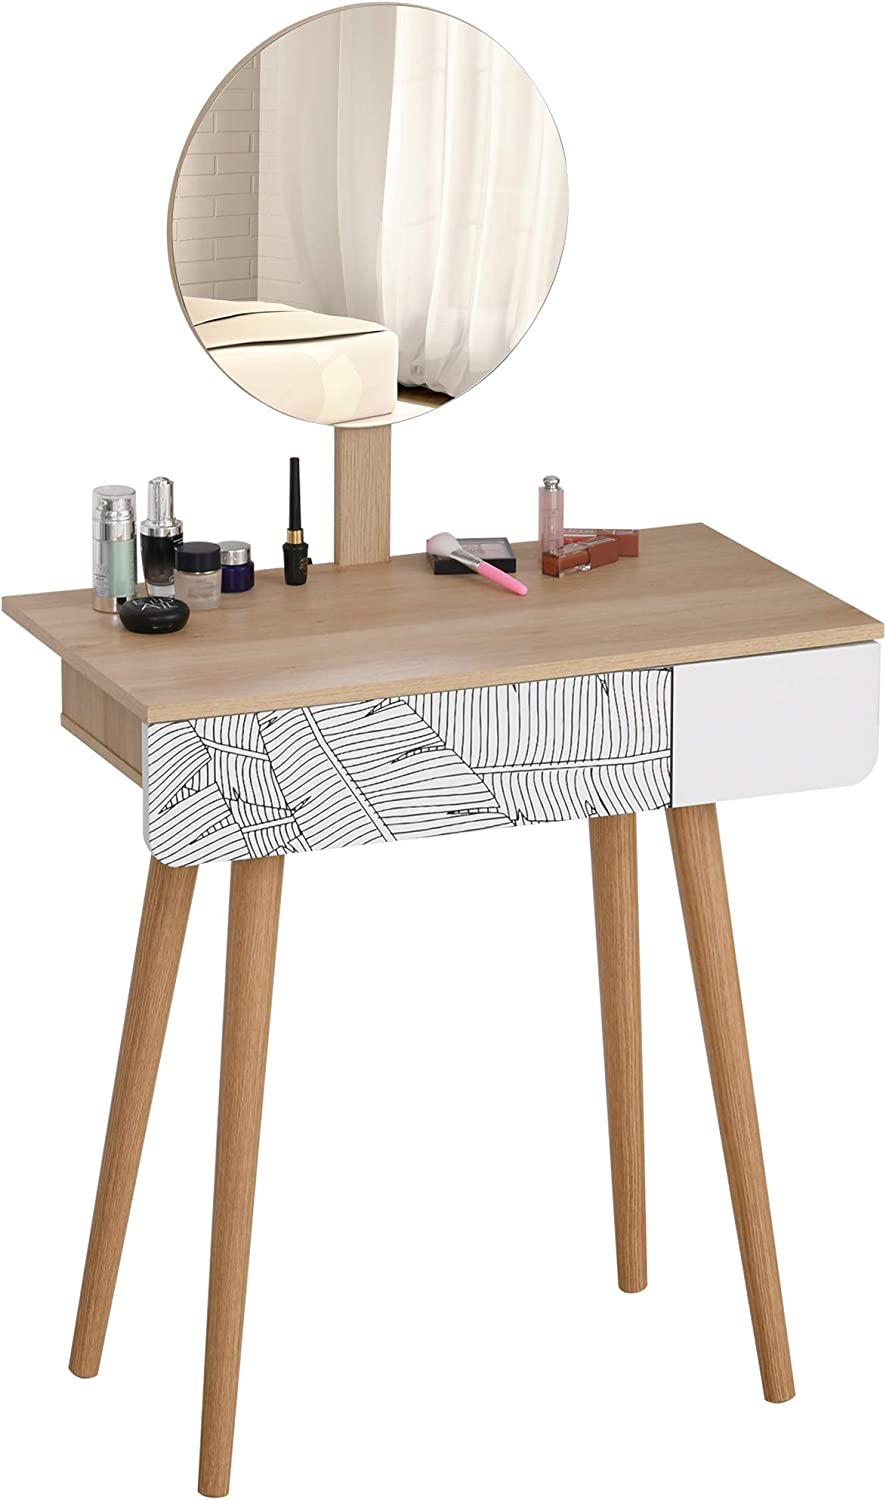 HOMCOM Vanity Table Round Mirror, with One Drawer Makeup Organizer Dressing  Table for Girls Dining Bedroom Use, Oak